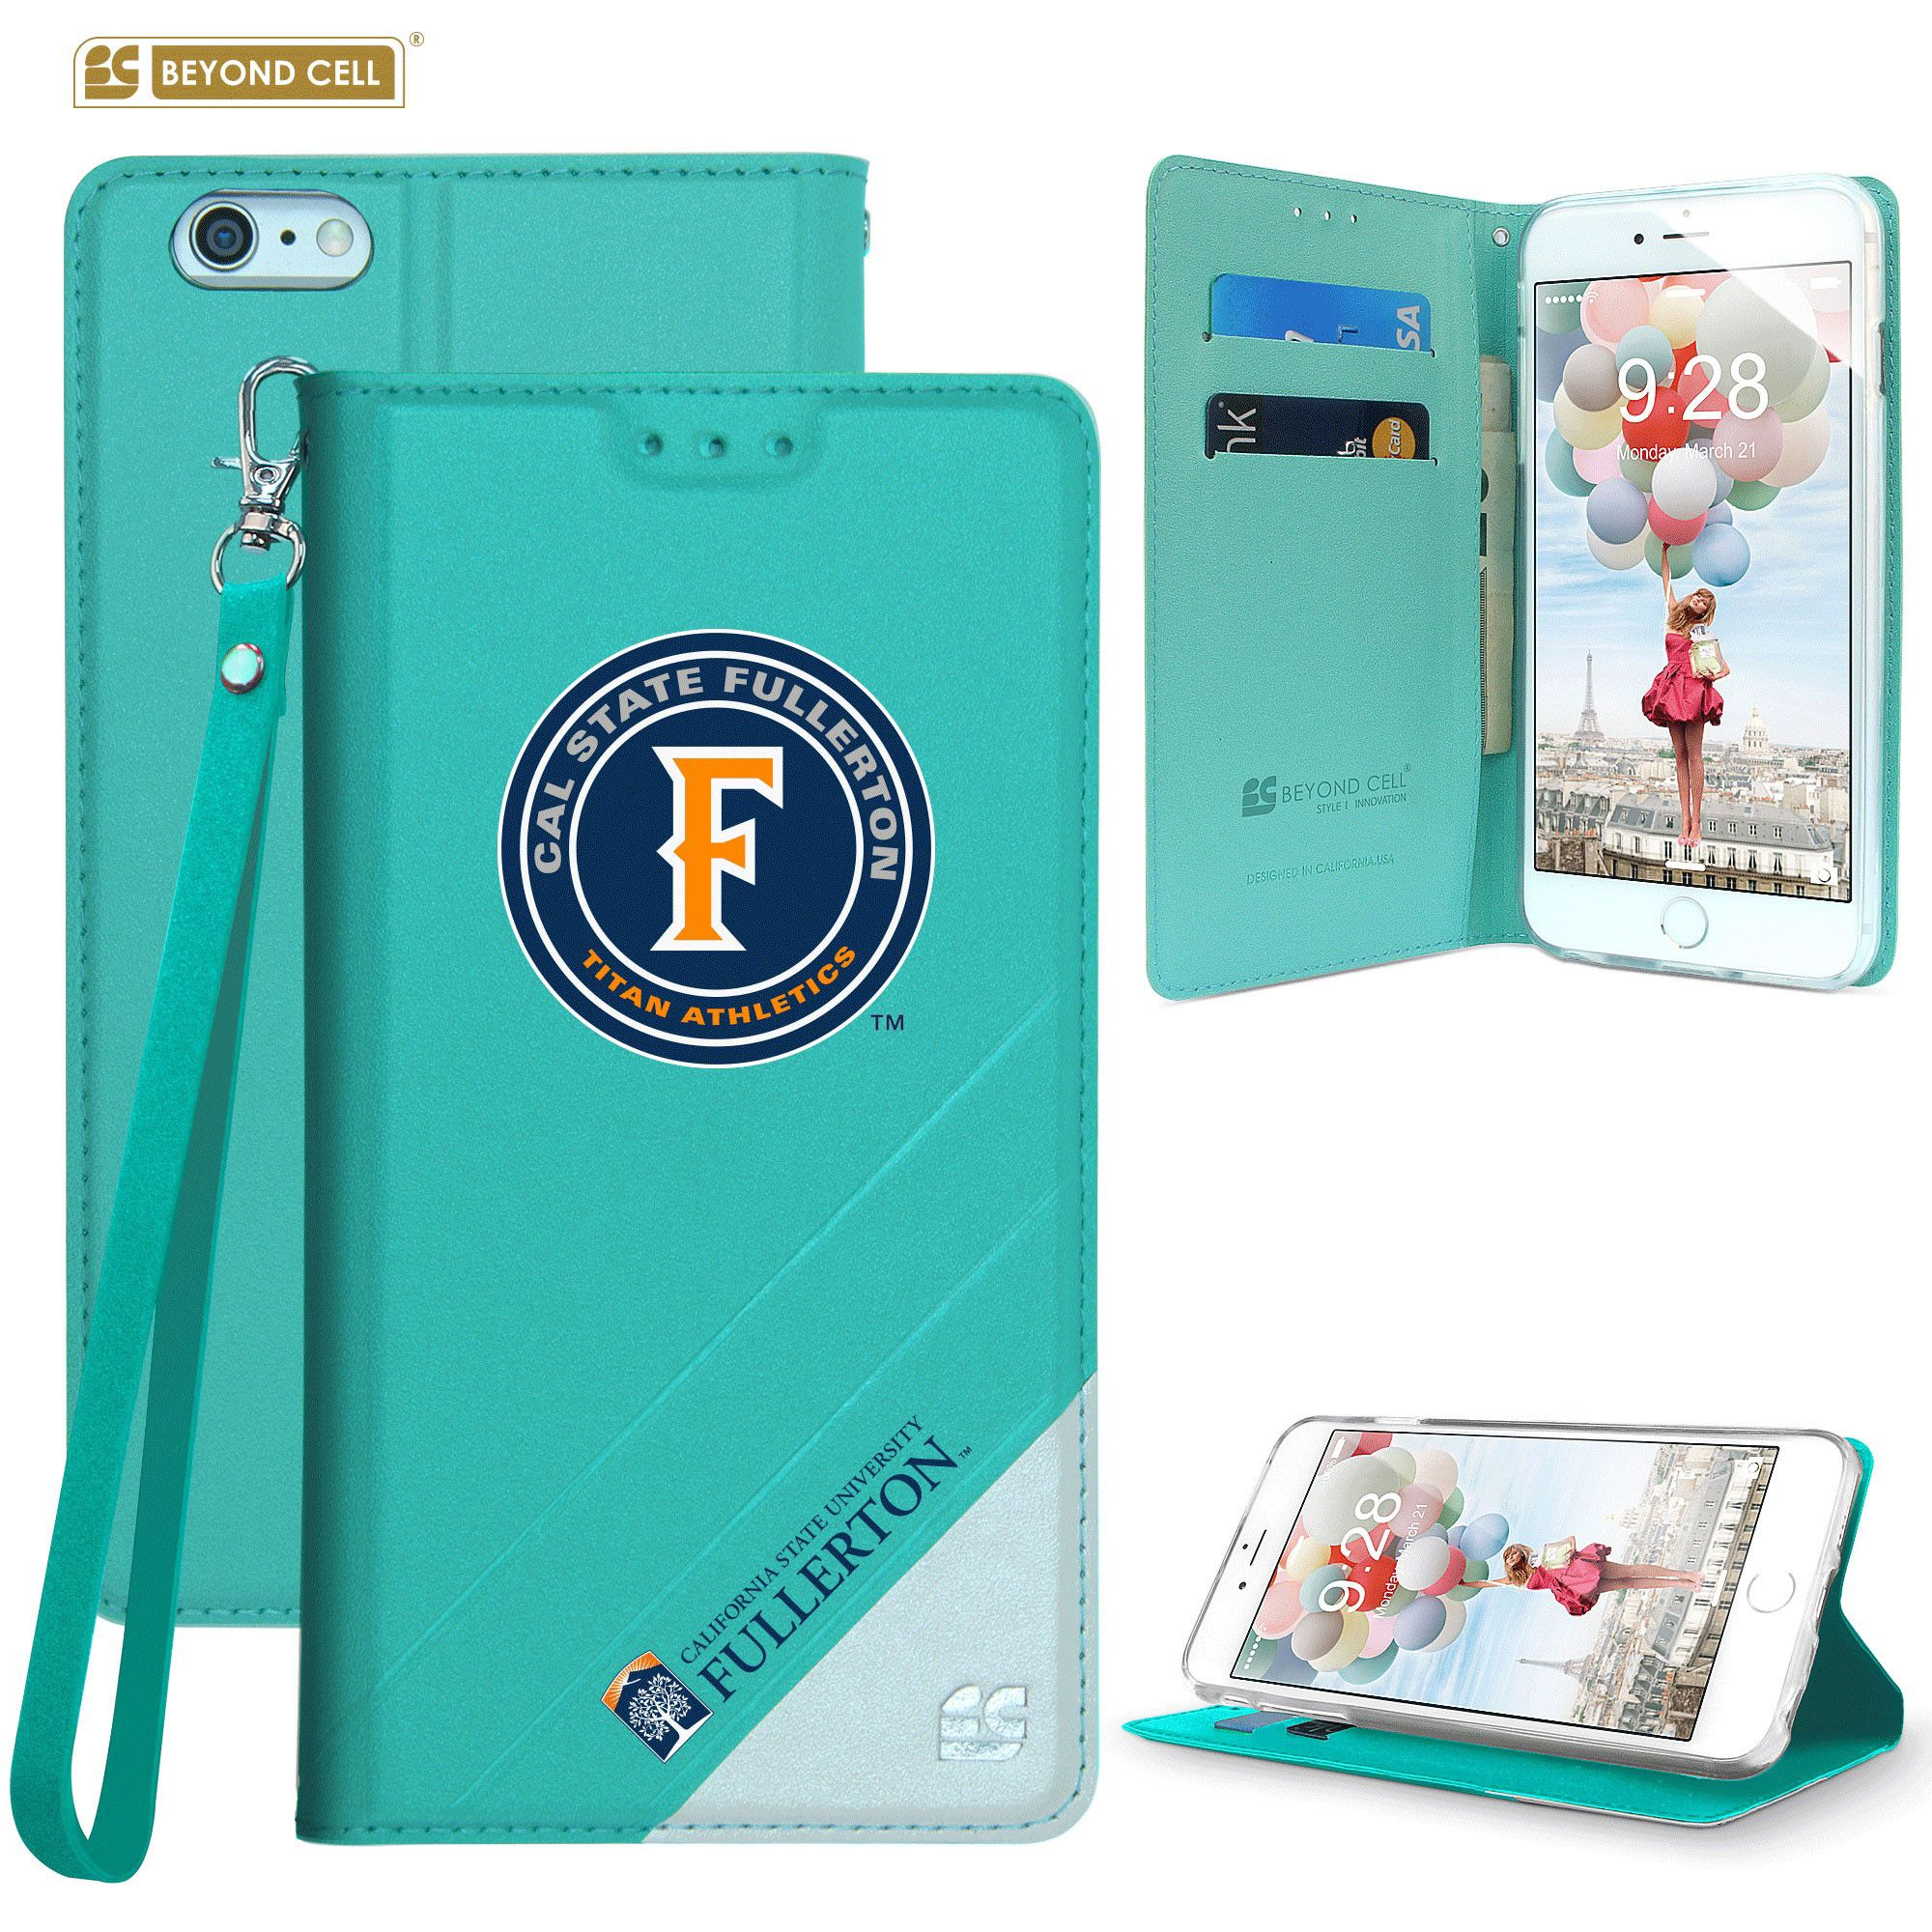 Apple iPhone 6/6s - Licensed Cal State Fullerton Folding Wallet case with card slots and wristlet, Teal